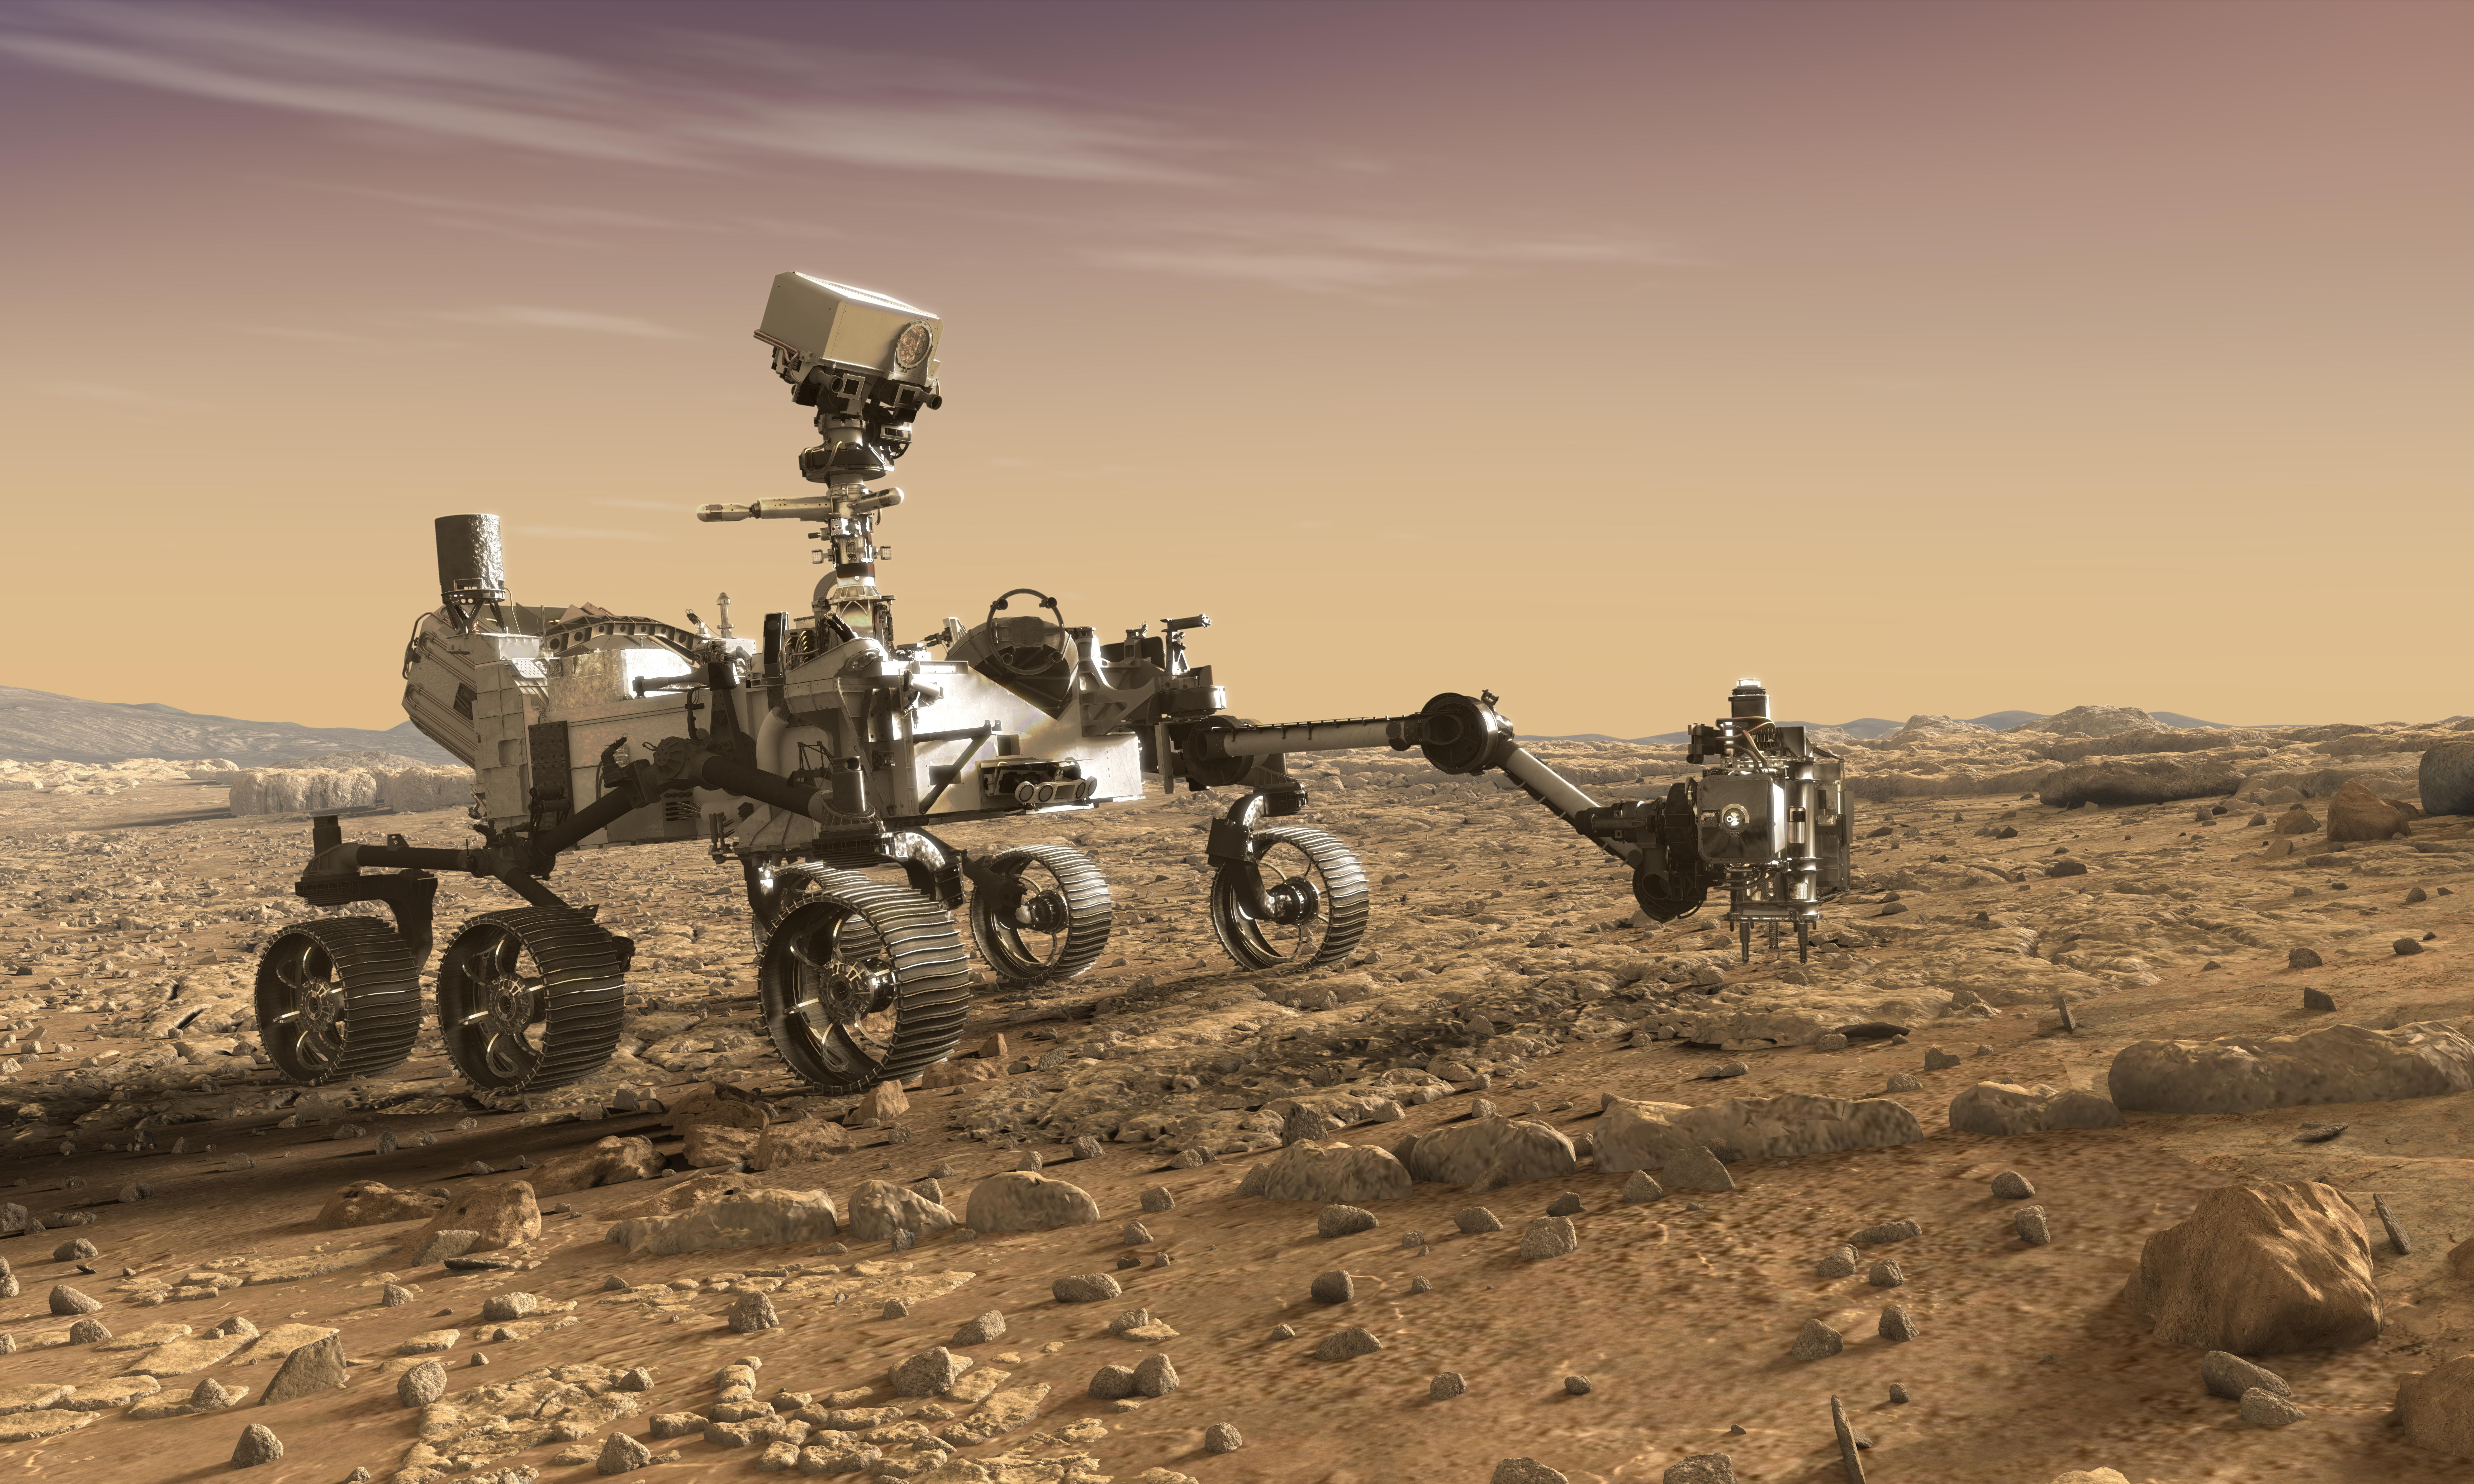 Daring Mars mission to send rocks back to Earth in hunt for past life